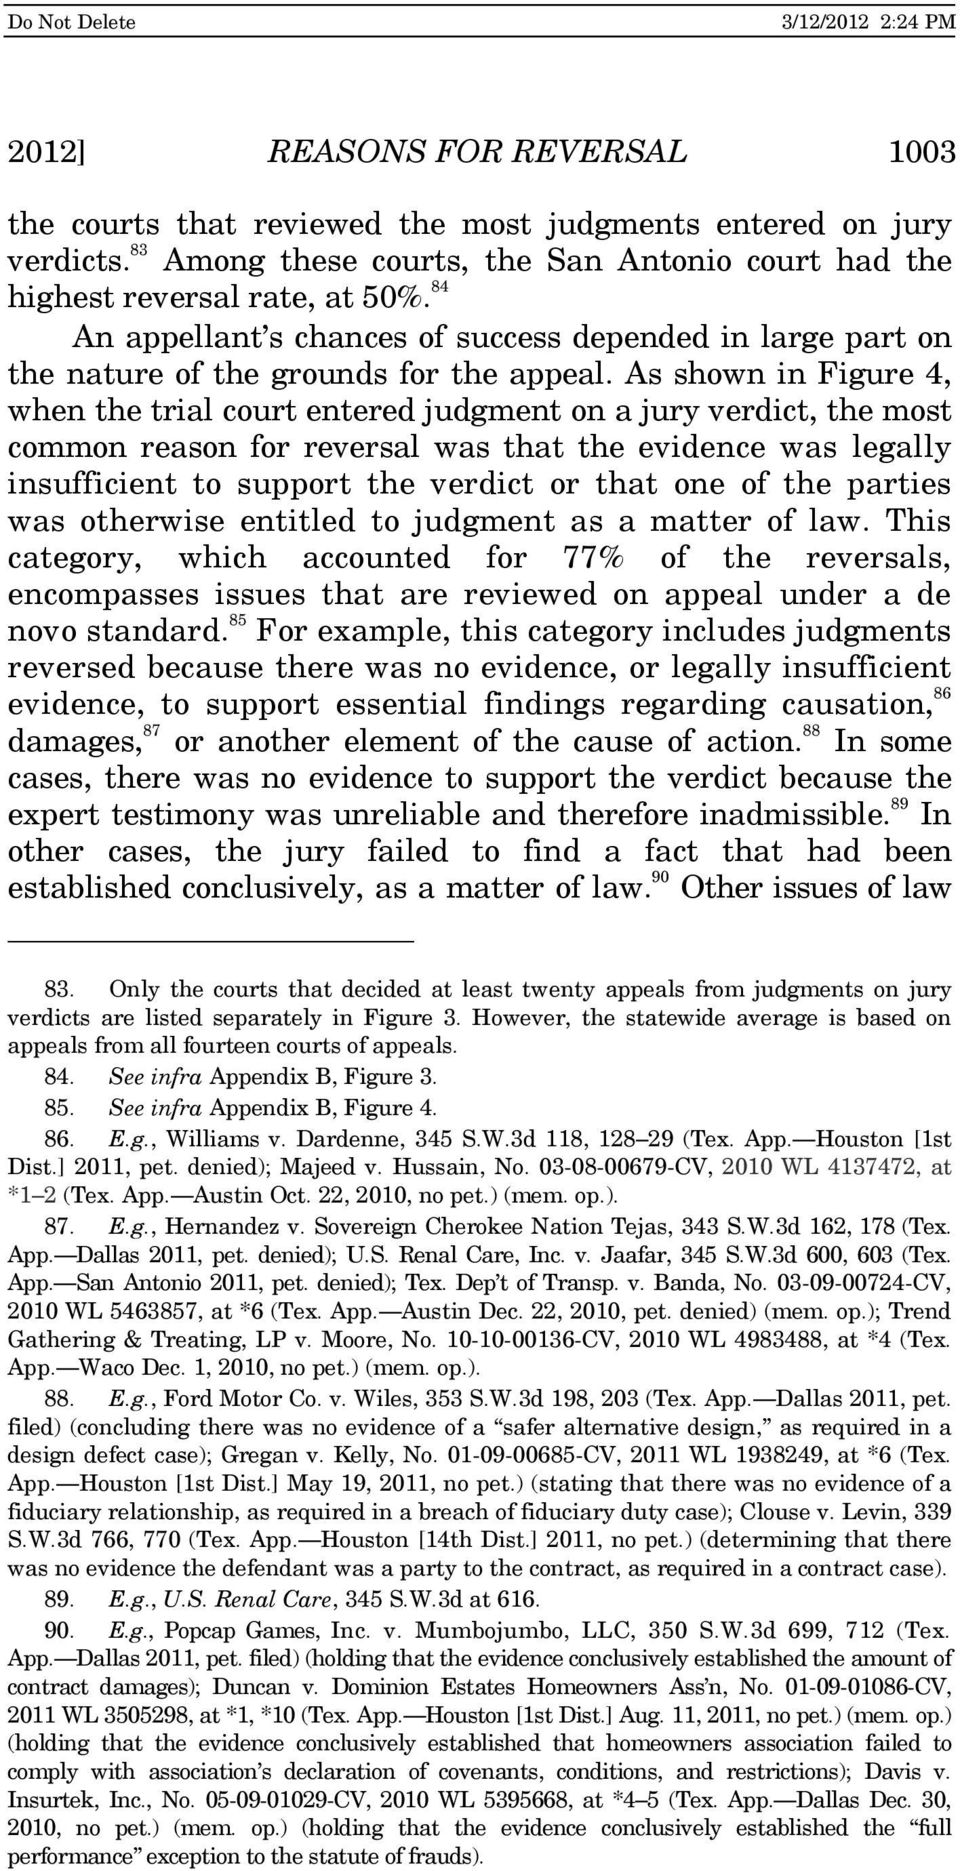 As shown in Figure 4, when the trial court entered judgment on a jury verdict, the most common reason for reversal was that the evidence was legally insufficient to support the verdict or that one of